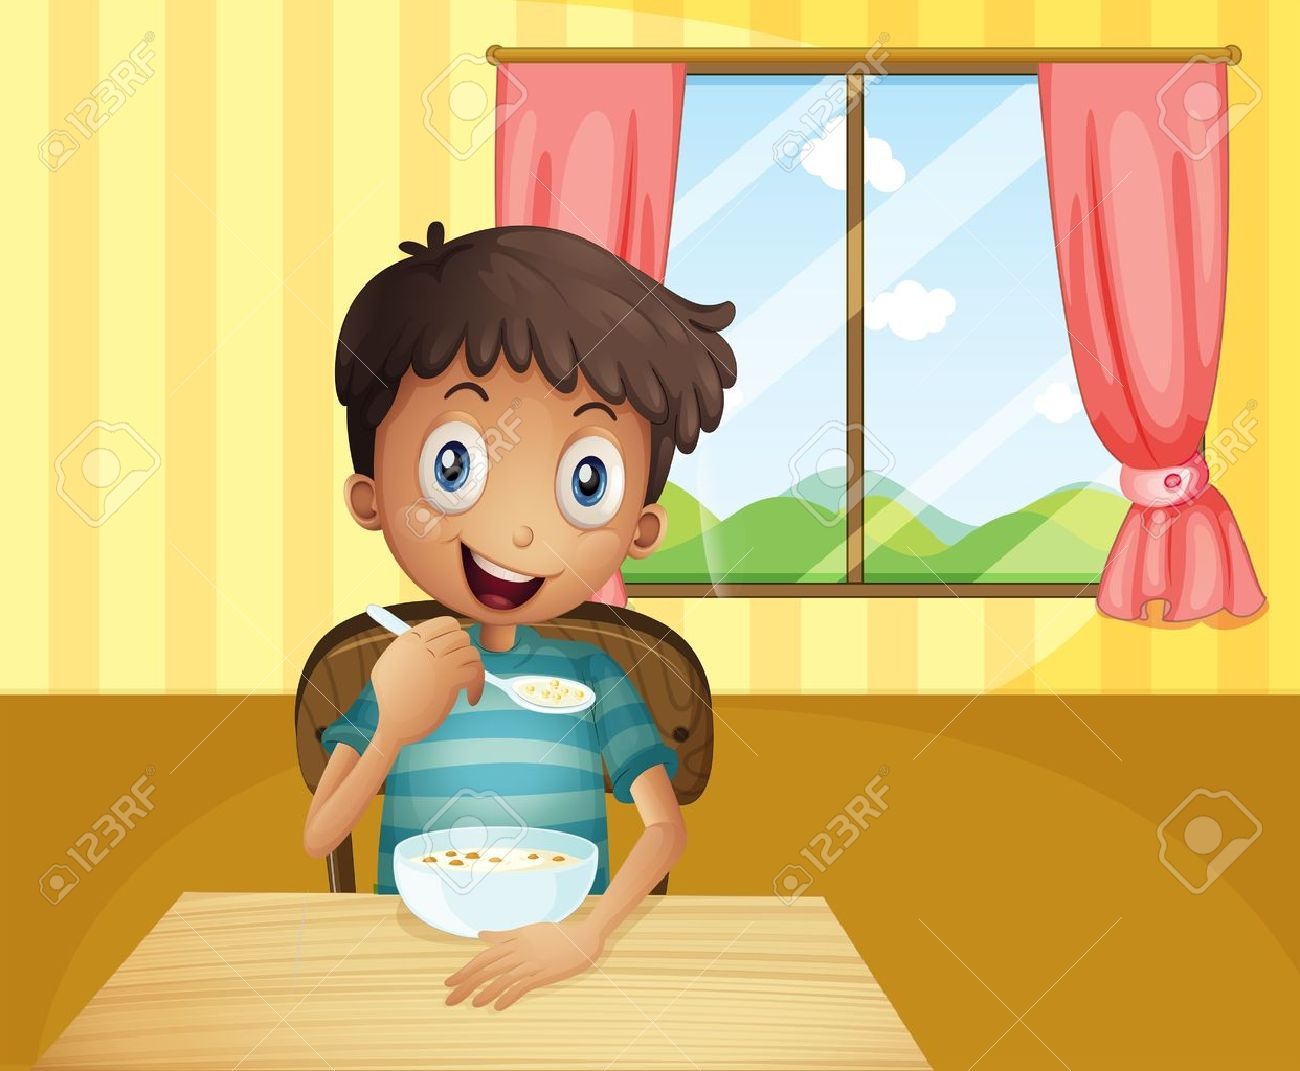 Illustration Of A Boy Eating Cereals Inside The House Royalty Free ...